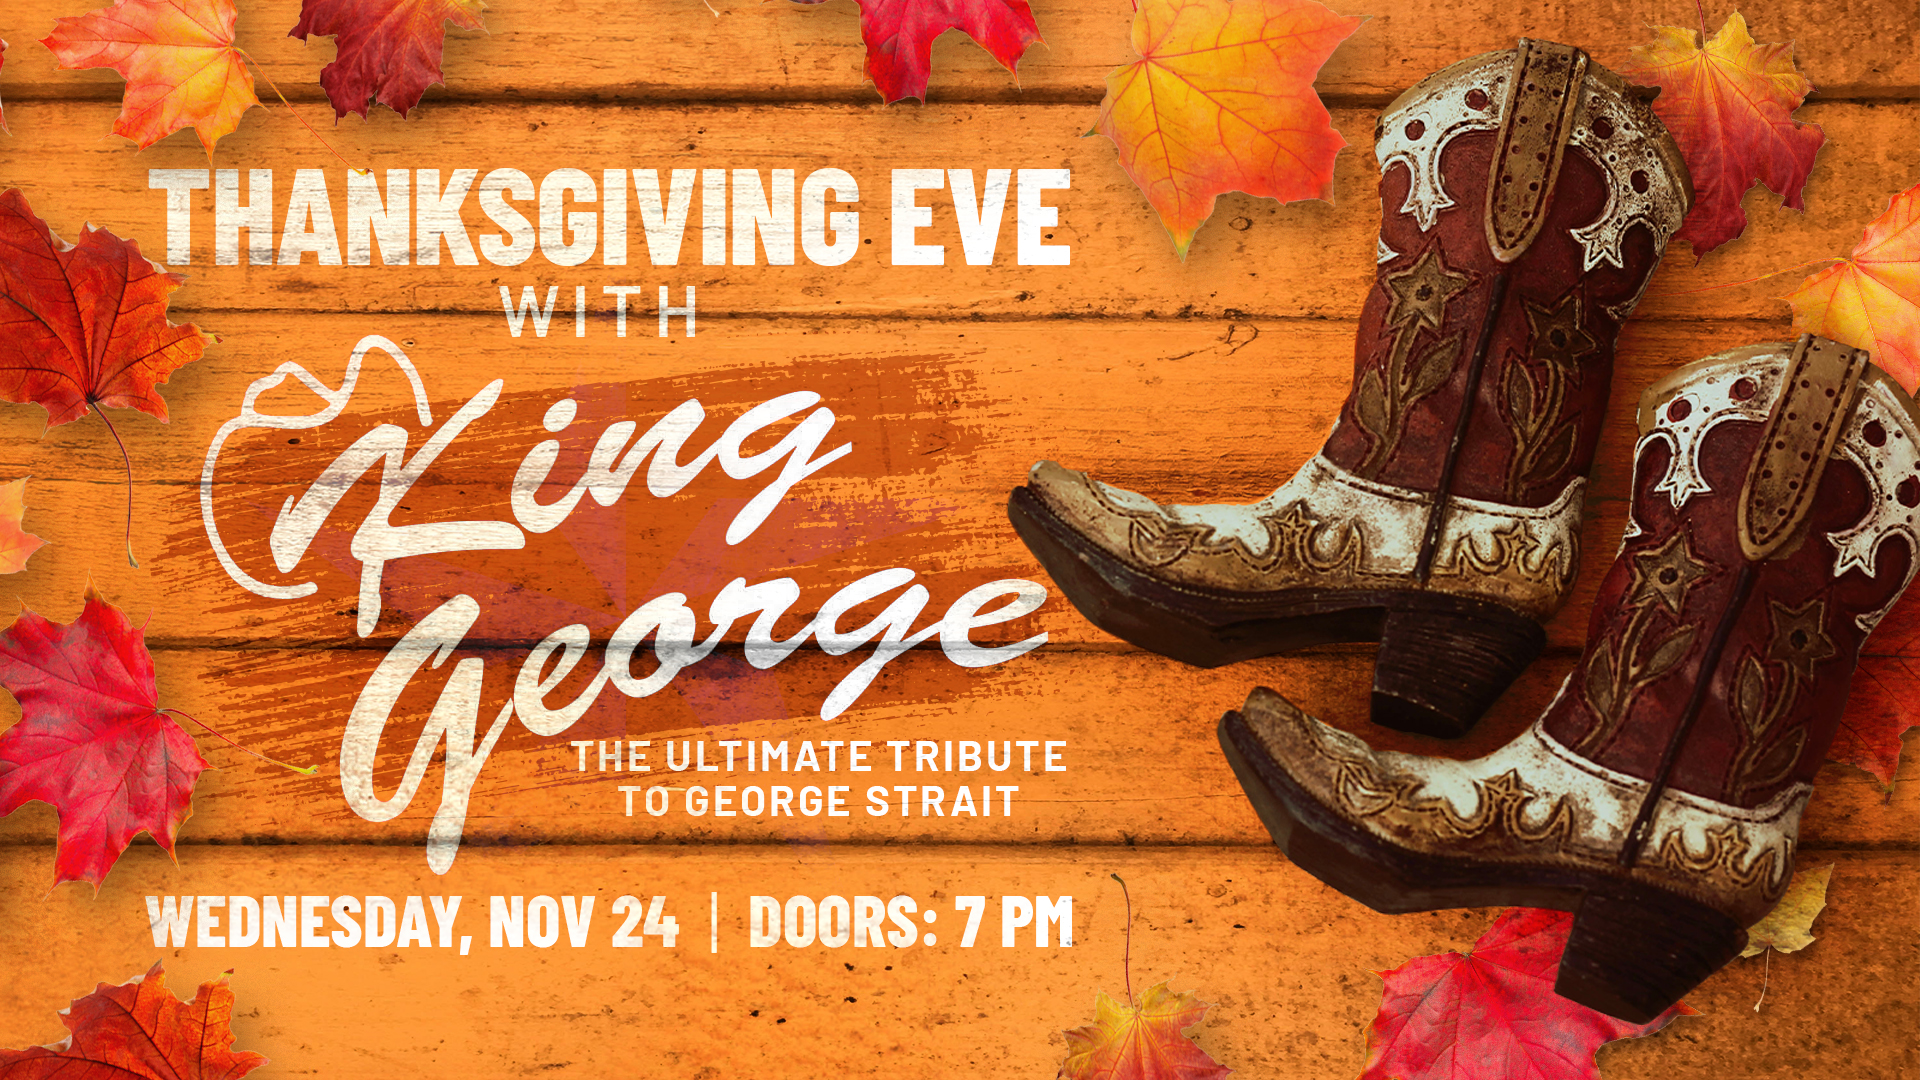 Promo image of Thanksgiving Eve with King George